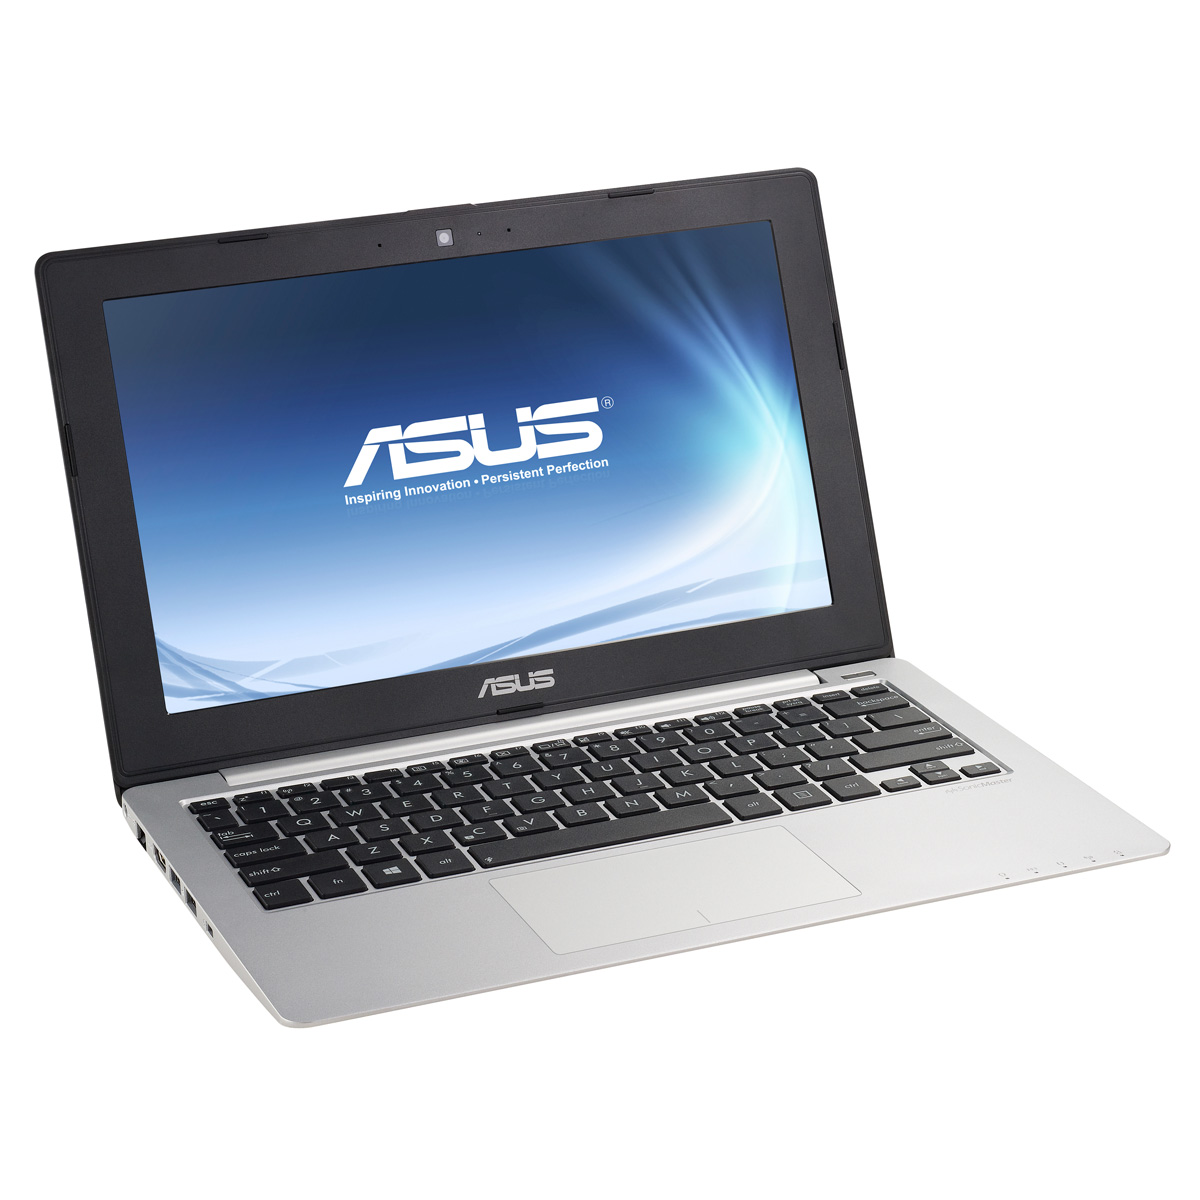 asus f201e kx167h bleu pc portable asus sur. Black Bedroom Furniture Sets. Home Design Ideas